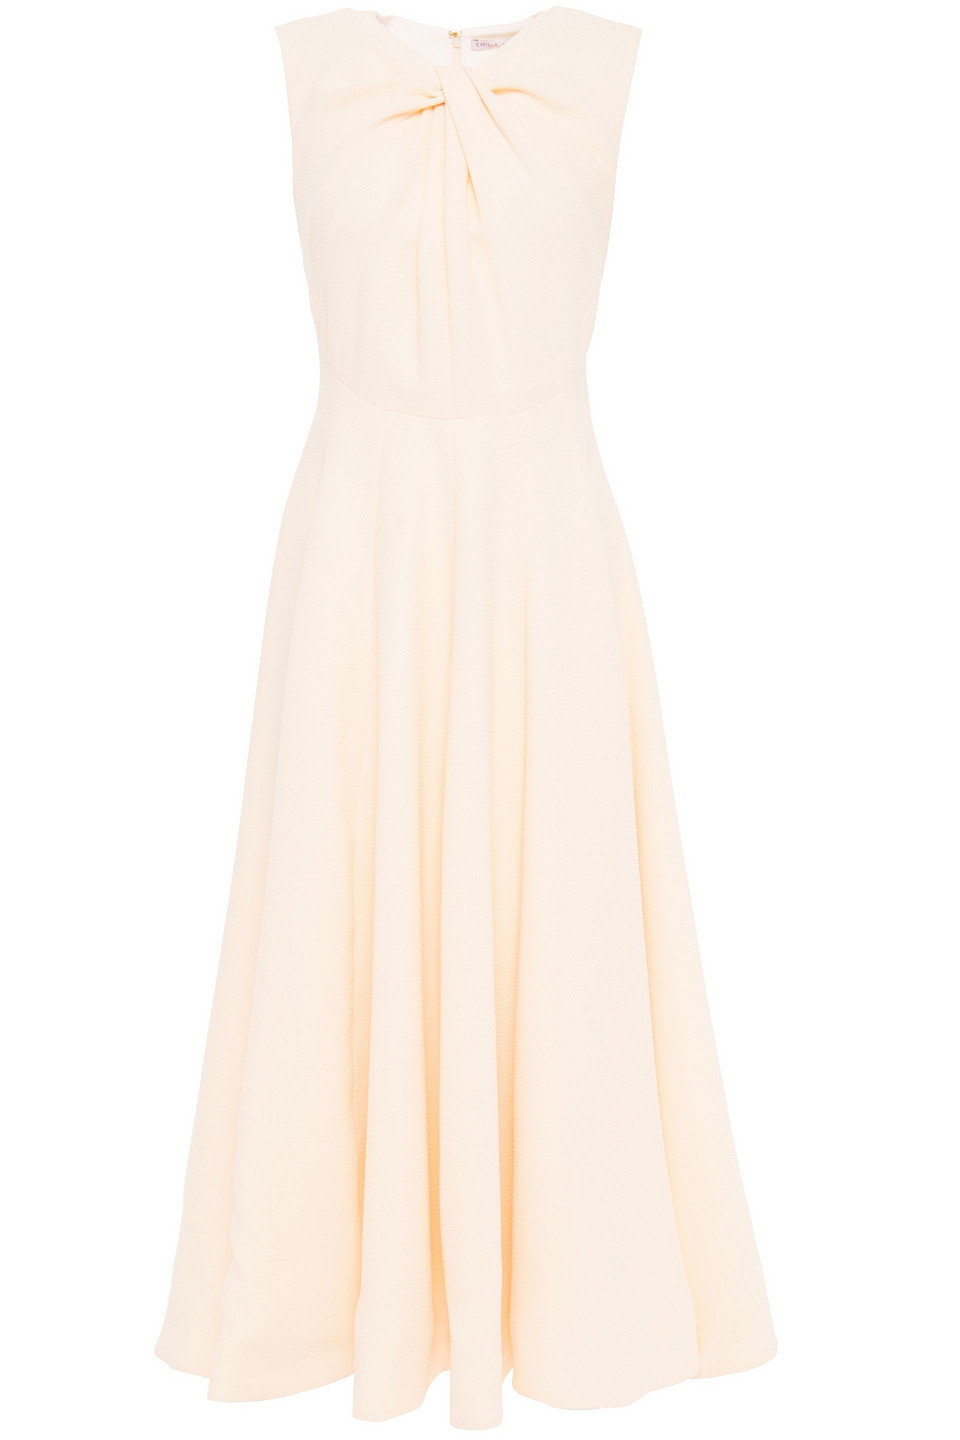 Emilia Wickstead | Emilia Wickstead Woman Meryl Twist-front Textured-crepe Midi Dress Baby Pink | Clouty